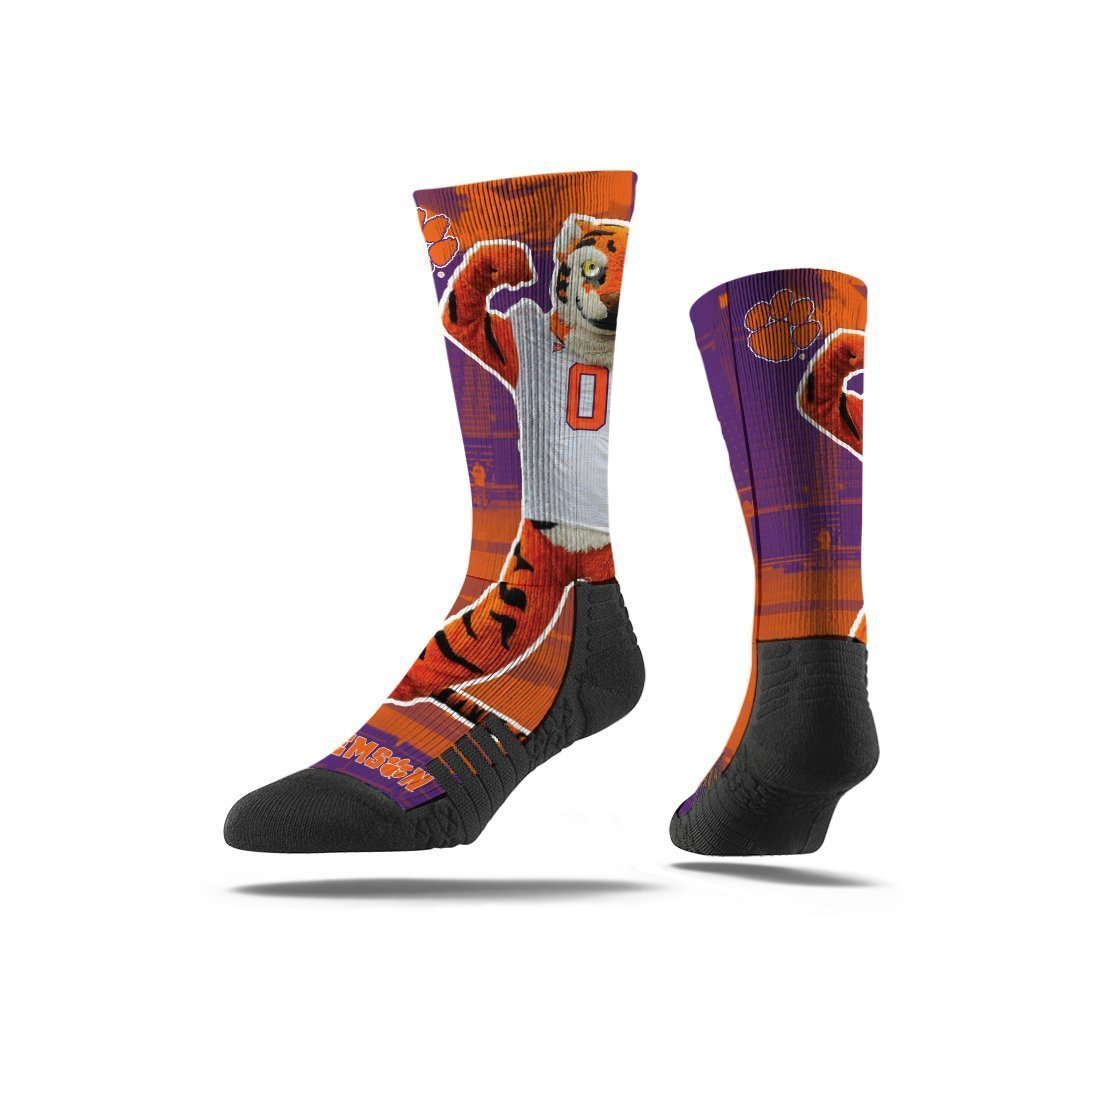 Strideline Clemson Mascot Flex Crew Socks - Mr. Knickerbocker